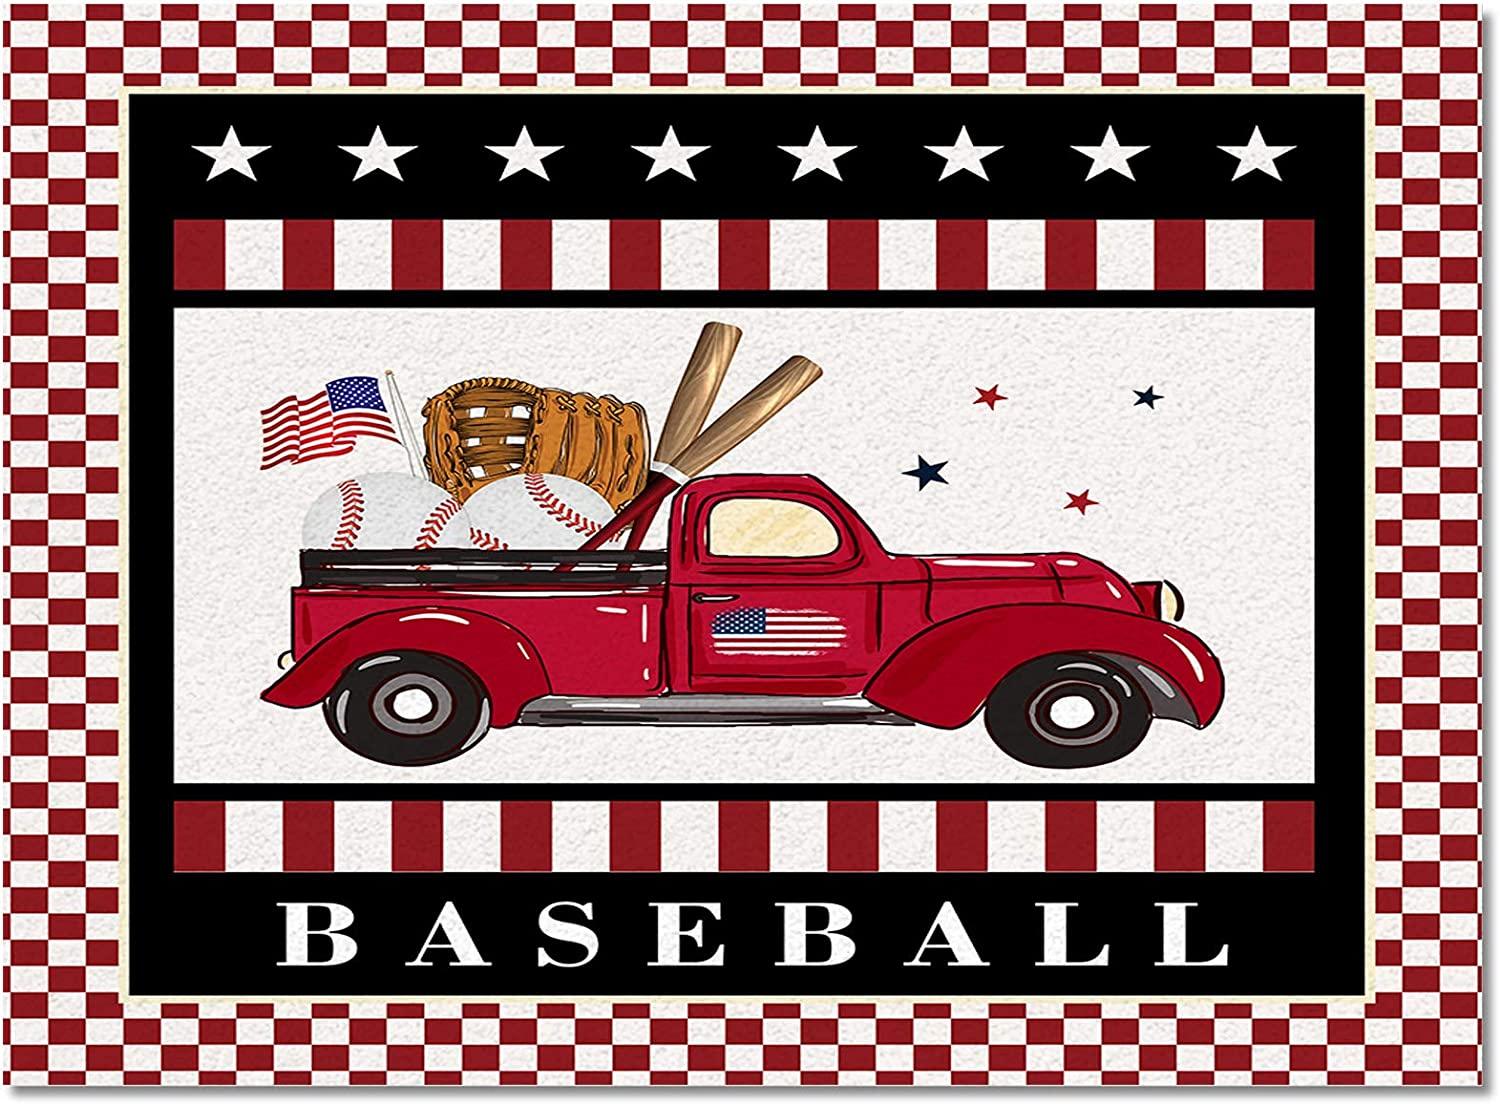 Elegant Meet OFFicial mail order 1998 Baseball Red Truck Star Rugs Durable Indoor W Area